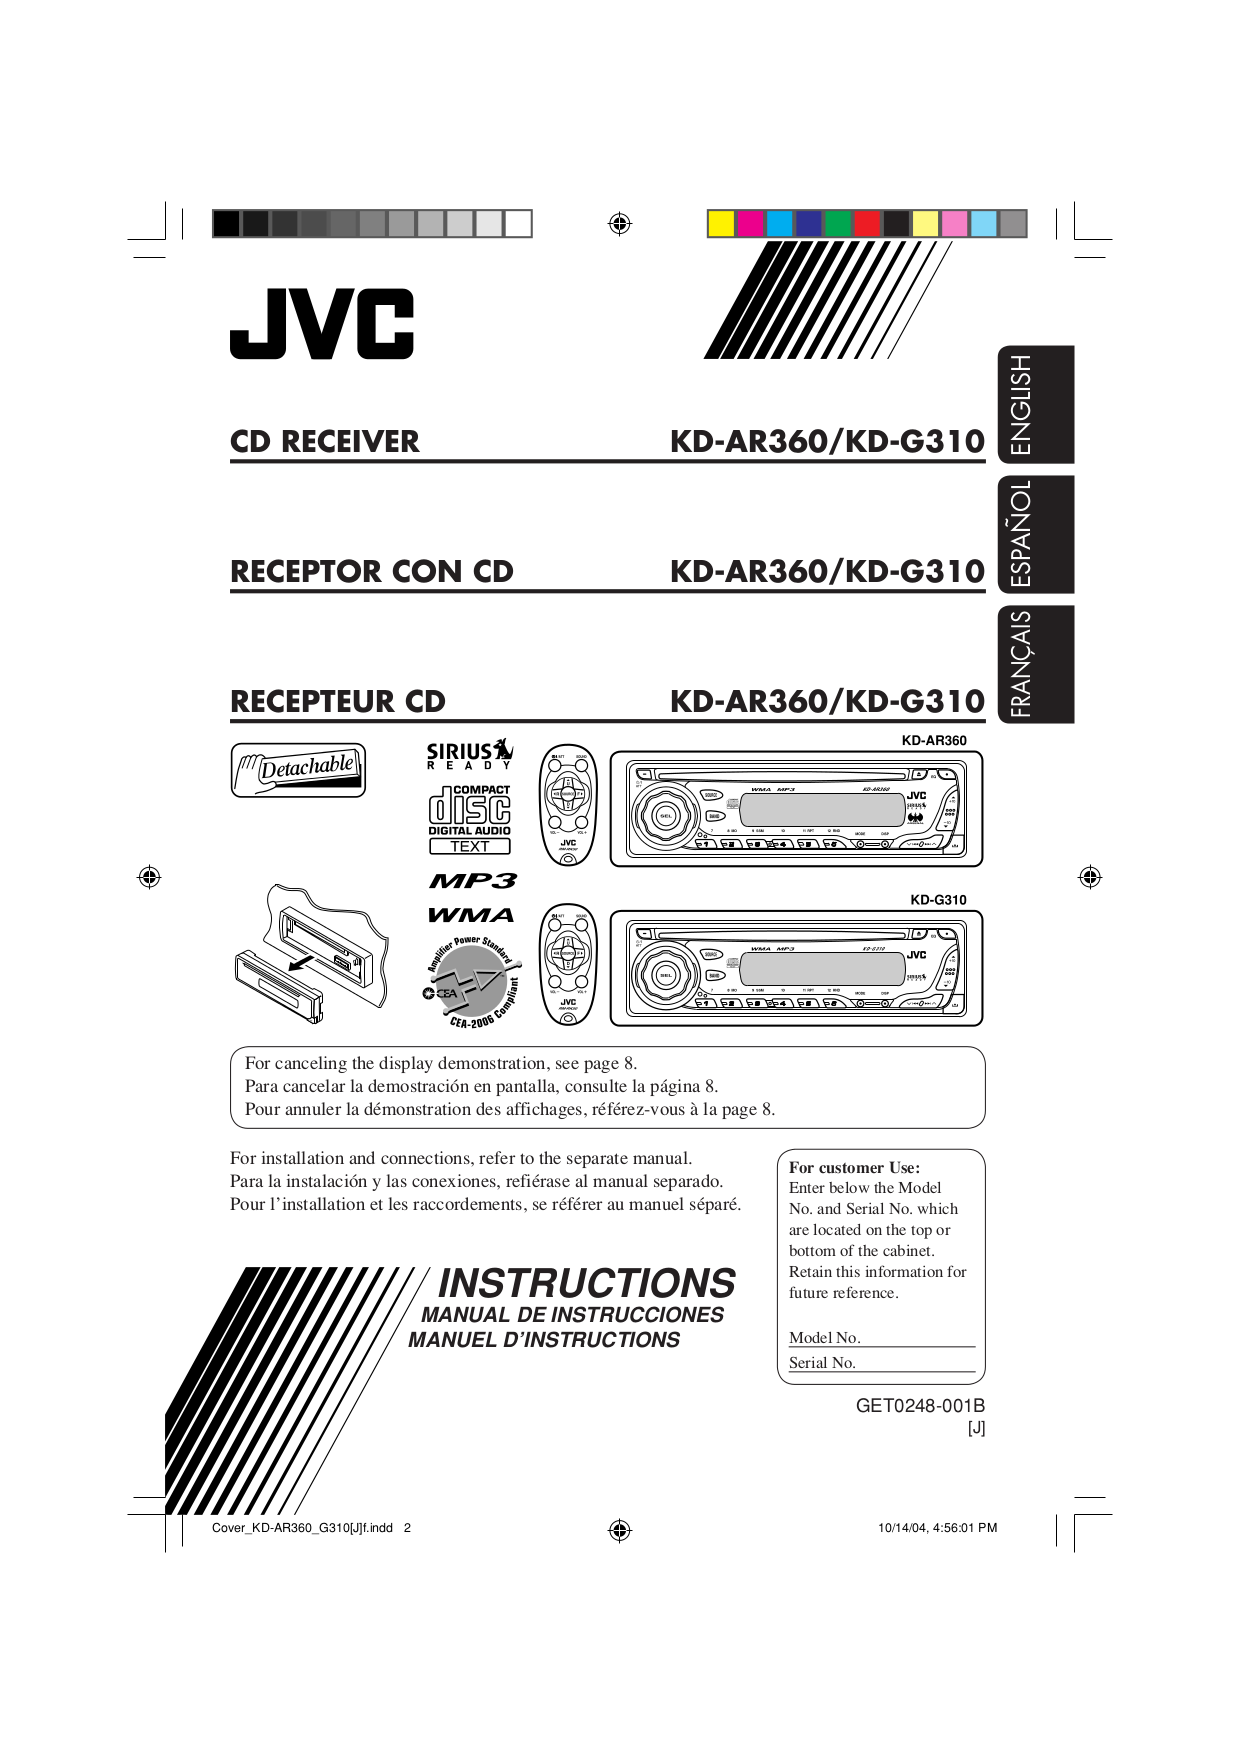 Jvc Kd G310 Wiring Diagram Wire Schematic Switch Symbols Centrifugal Symbol Darren Criss 26 Images Diagrams Mifinder Co Car Plug